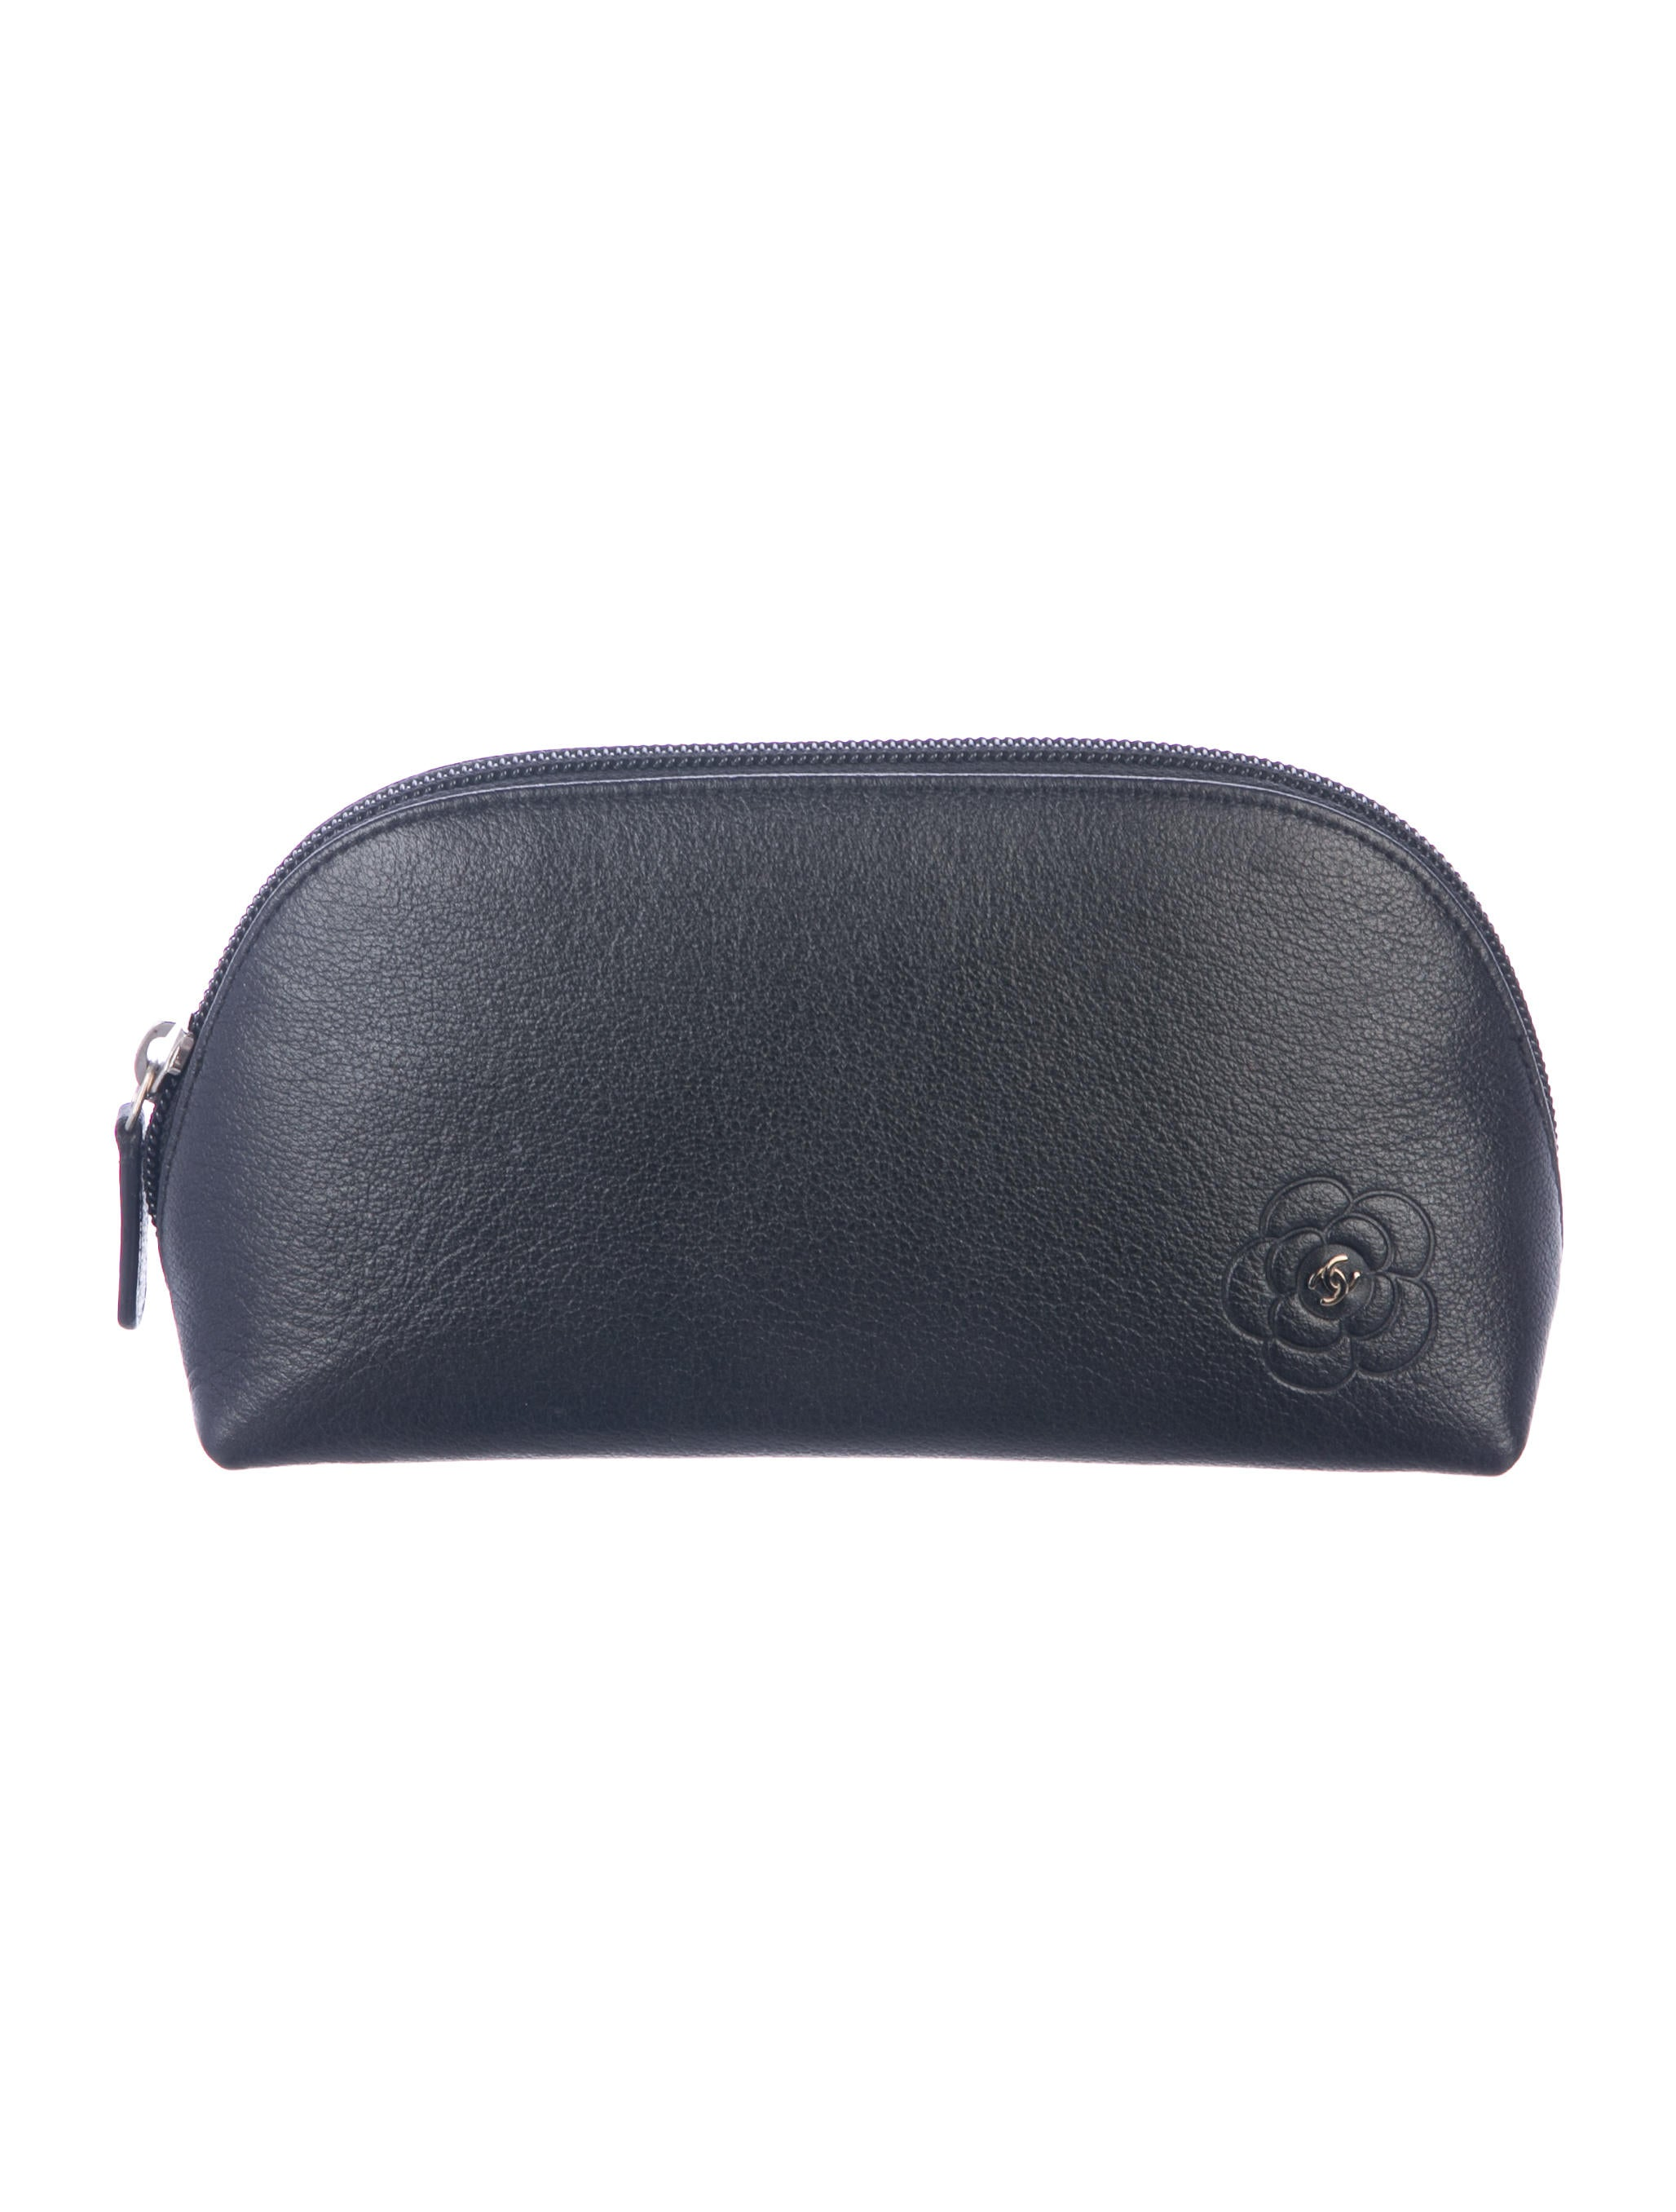 1616c07ad667 Chanel Cosmetic Bags | The RealReal